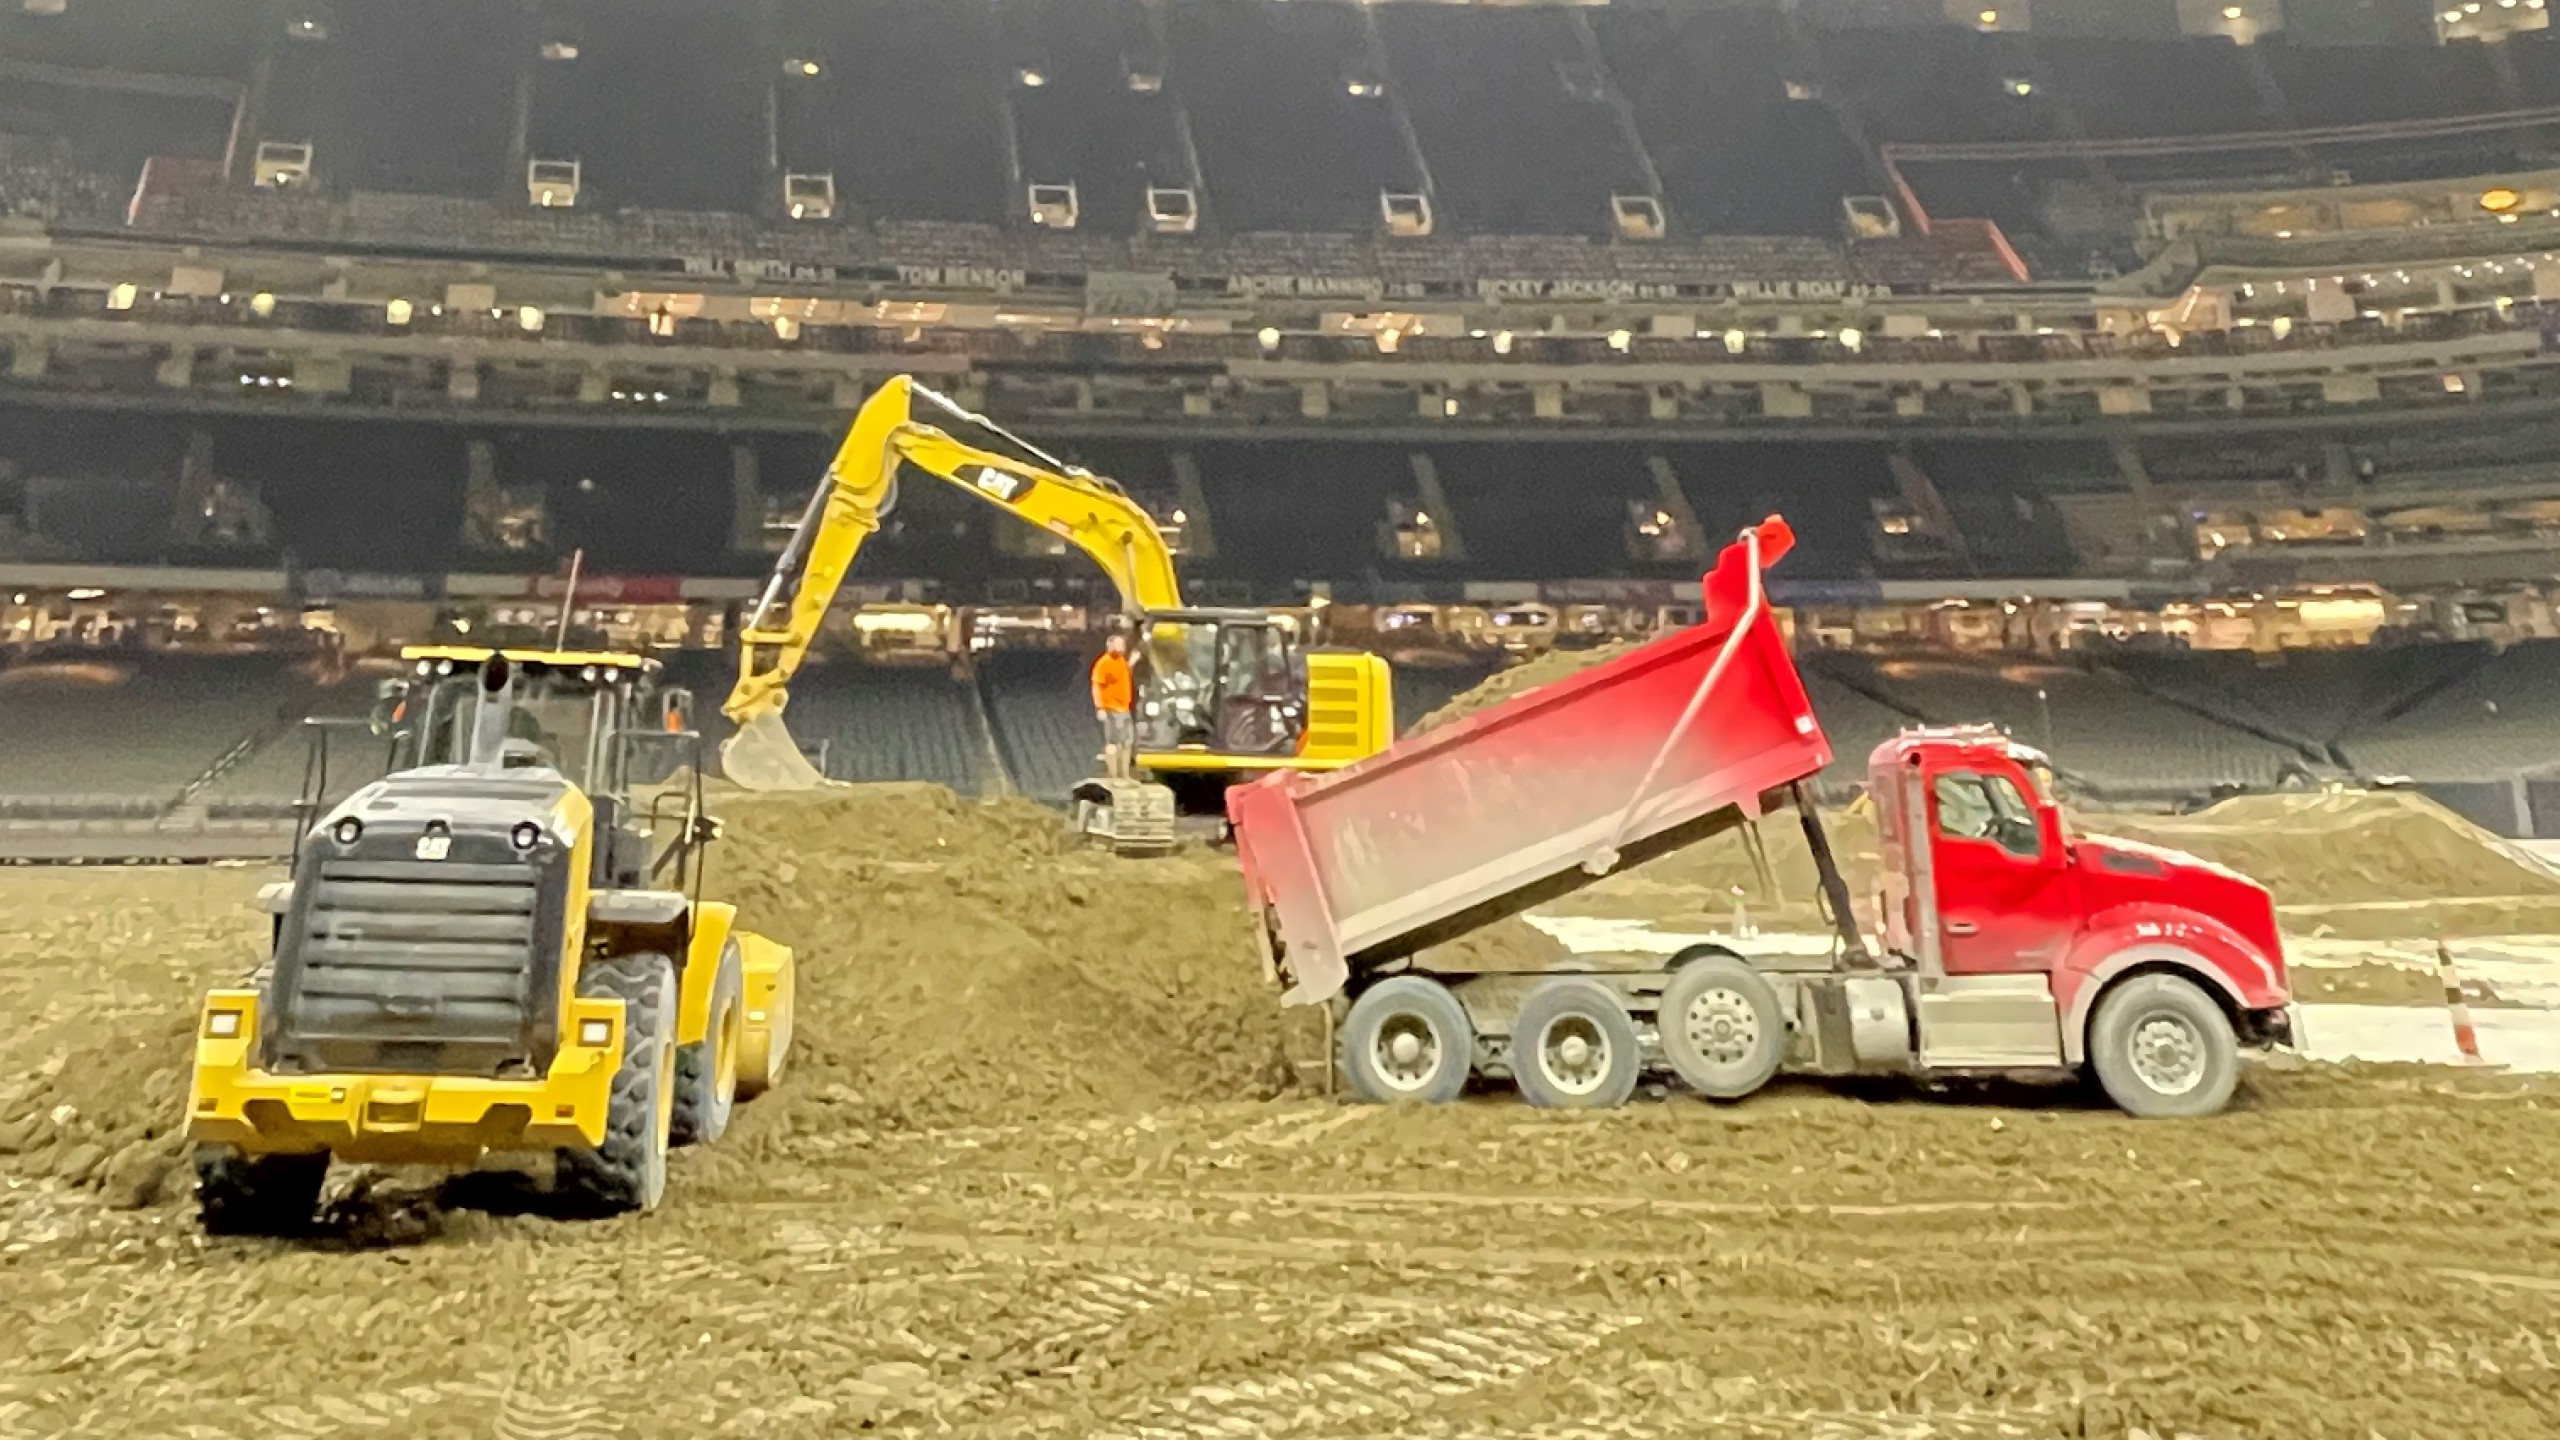 https://wgno.com/news/local/monster-jam-prepares-for-upcoming-weekend-delivering-3-5-million-pounds-of-dirt-to-caesars-superdome/